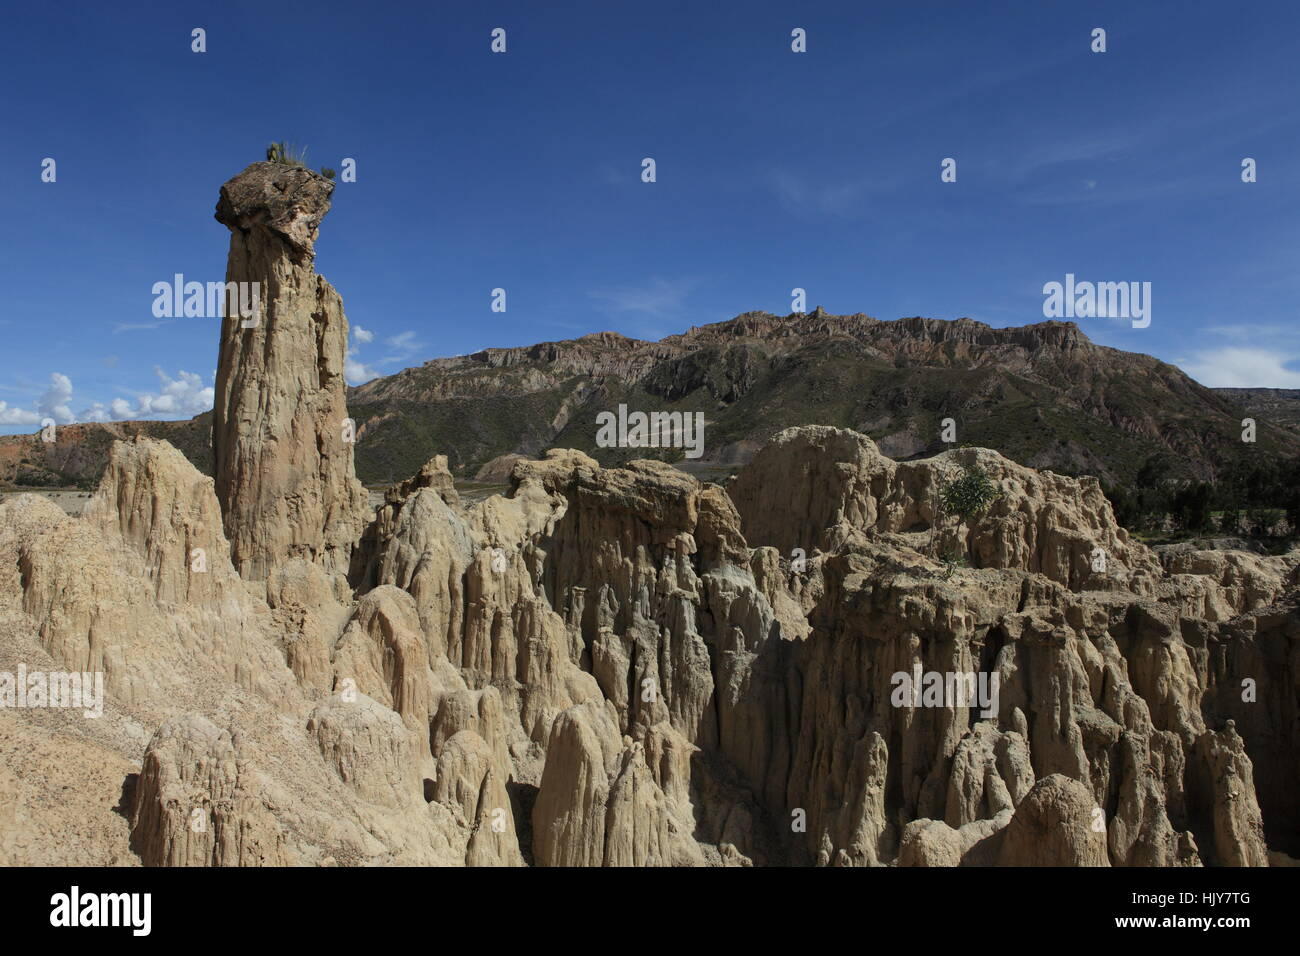 erosion, south america, andes, bolivia, rock, erosion, south america, geology, Stock Photo